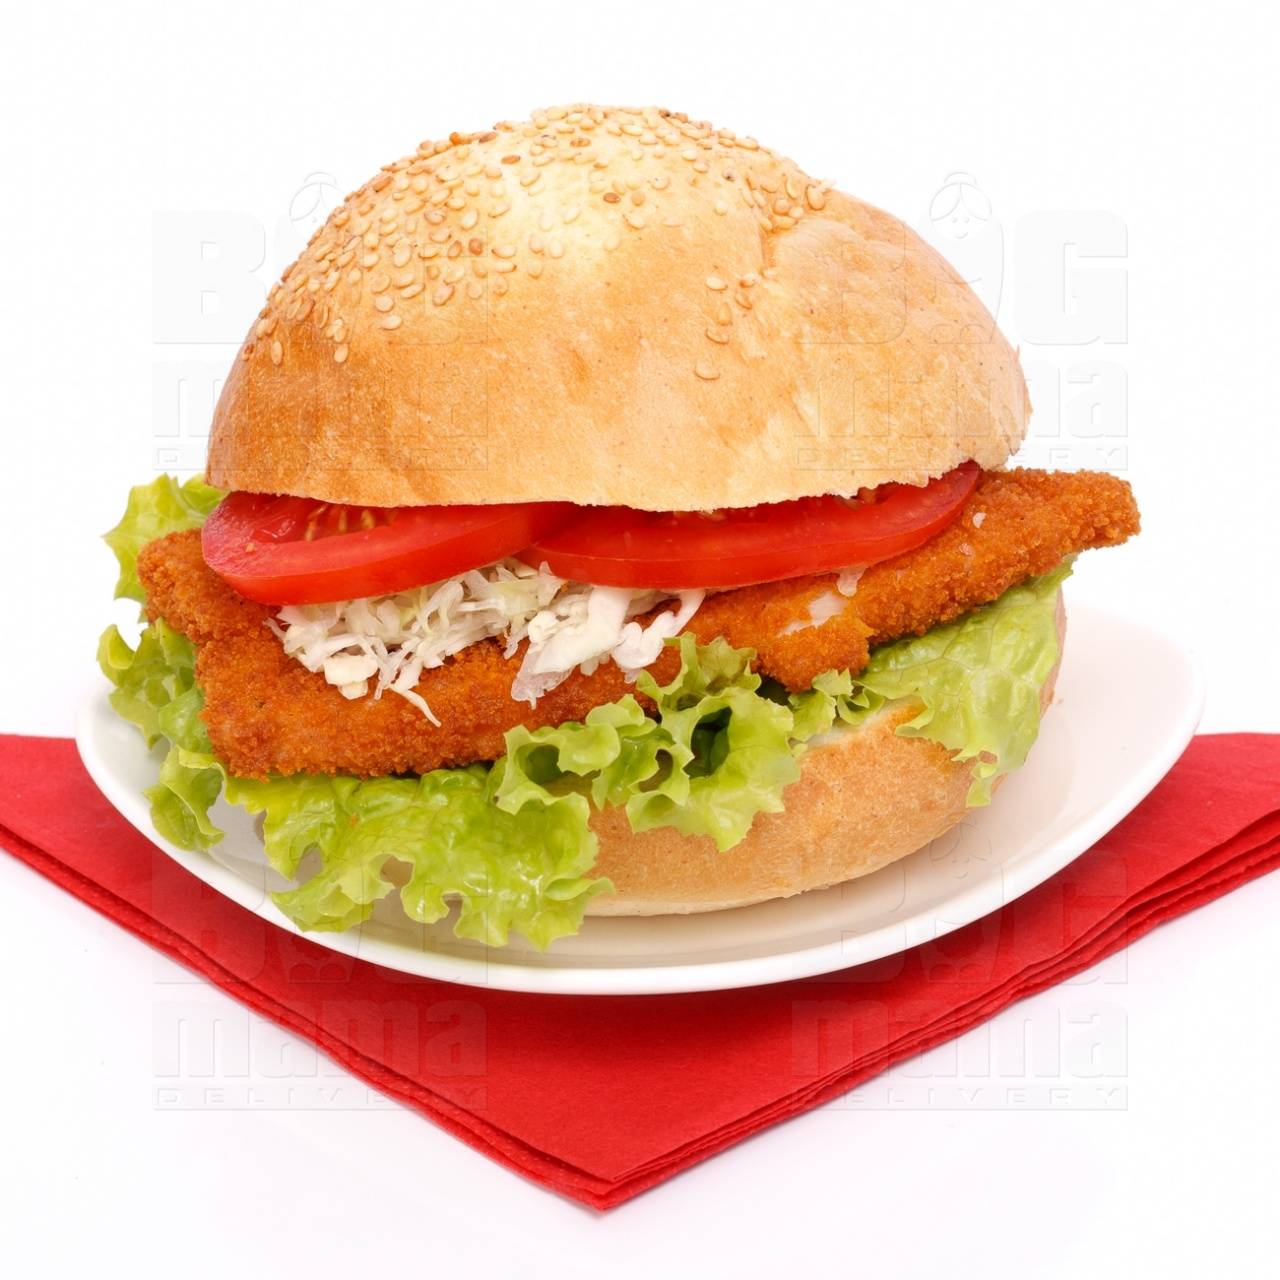 Product #60 image - Big sandwich with chicken schnitzel